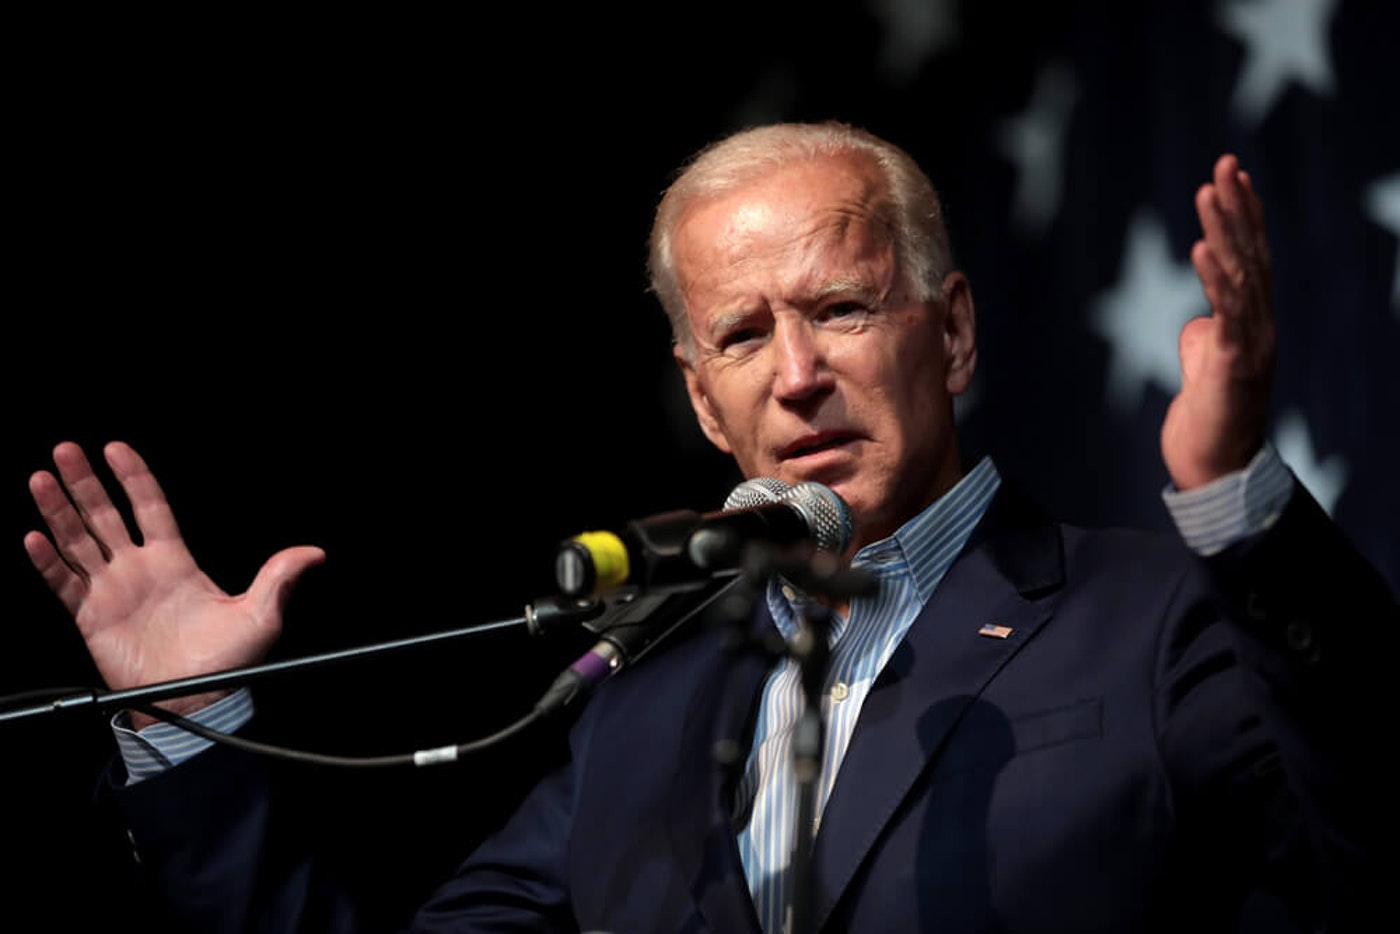 Democratic presidential nominee Joe Biden in 2019 in Iowa. As conventions heat up, attention has turned to Biden and Trump's competing tax plans. (Image via Shutterstock)